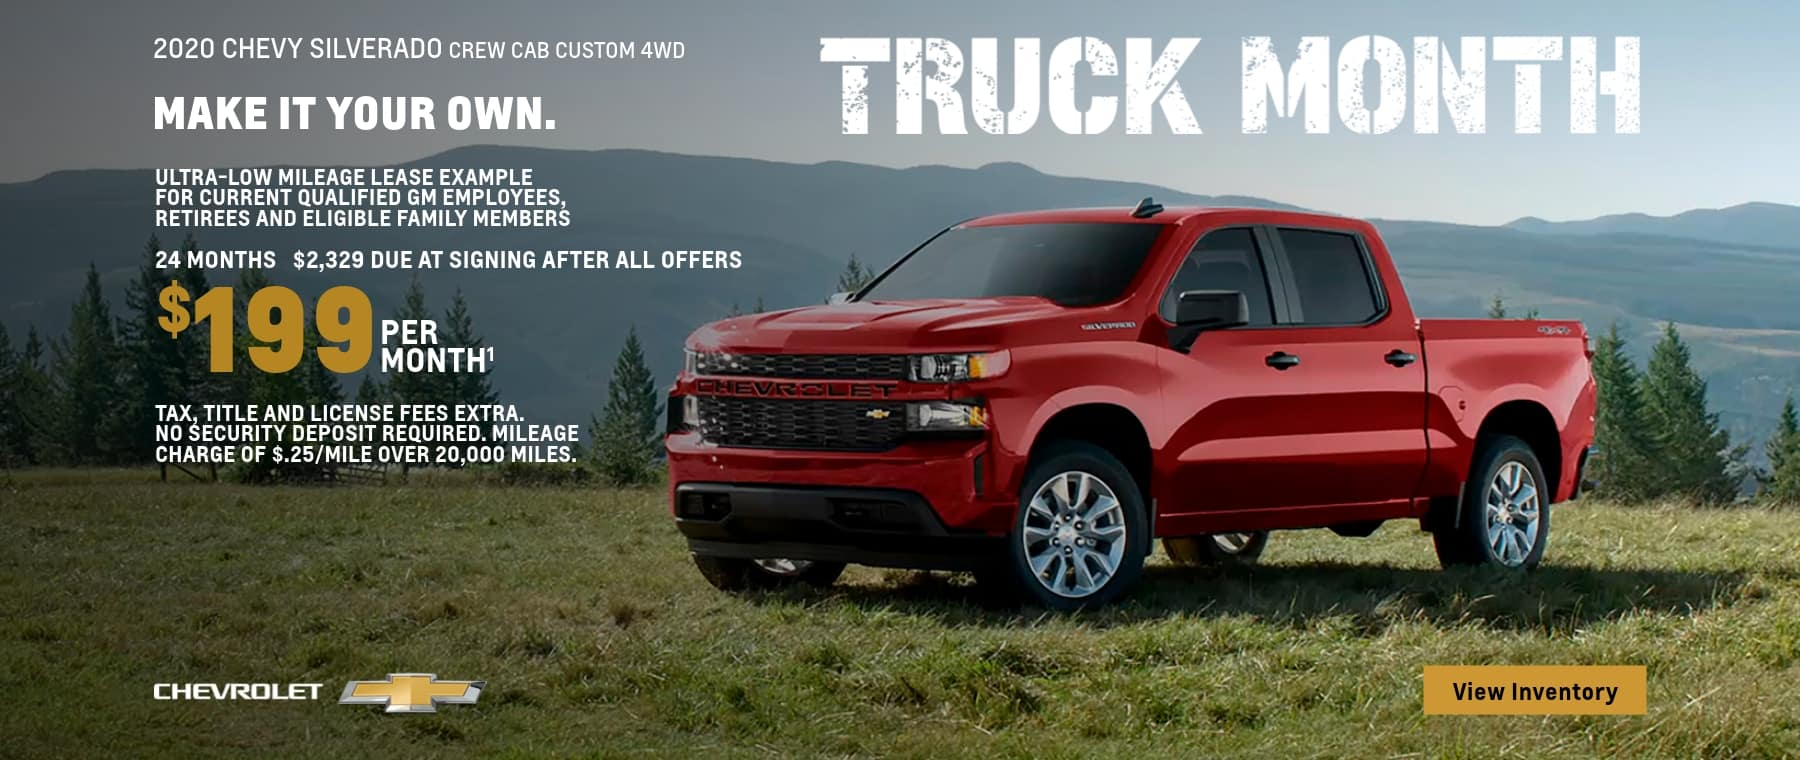 2020 Silverado 1500 Crew Cab Custom 4WD Ultra-Low Mileage Lease Examples for Qualified Lessees $199 per month.